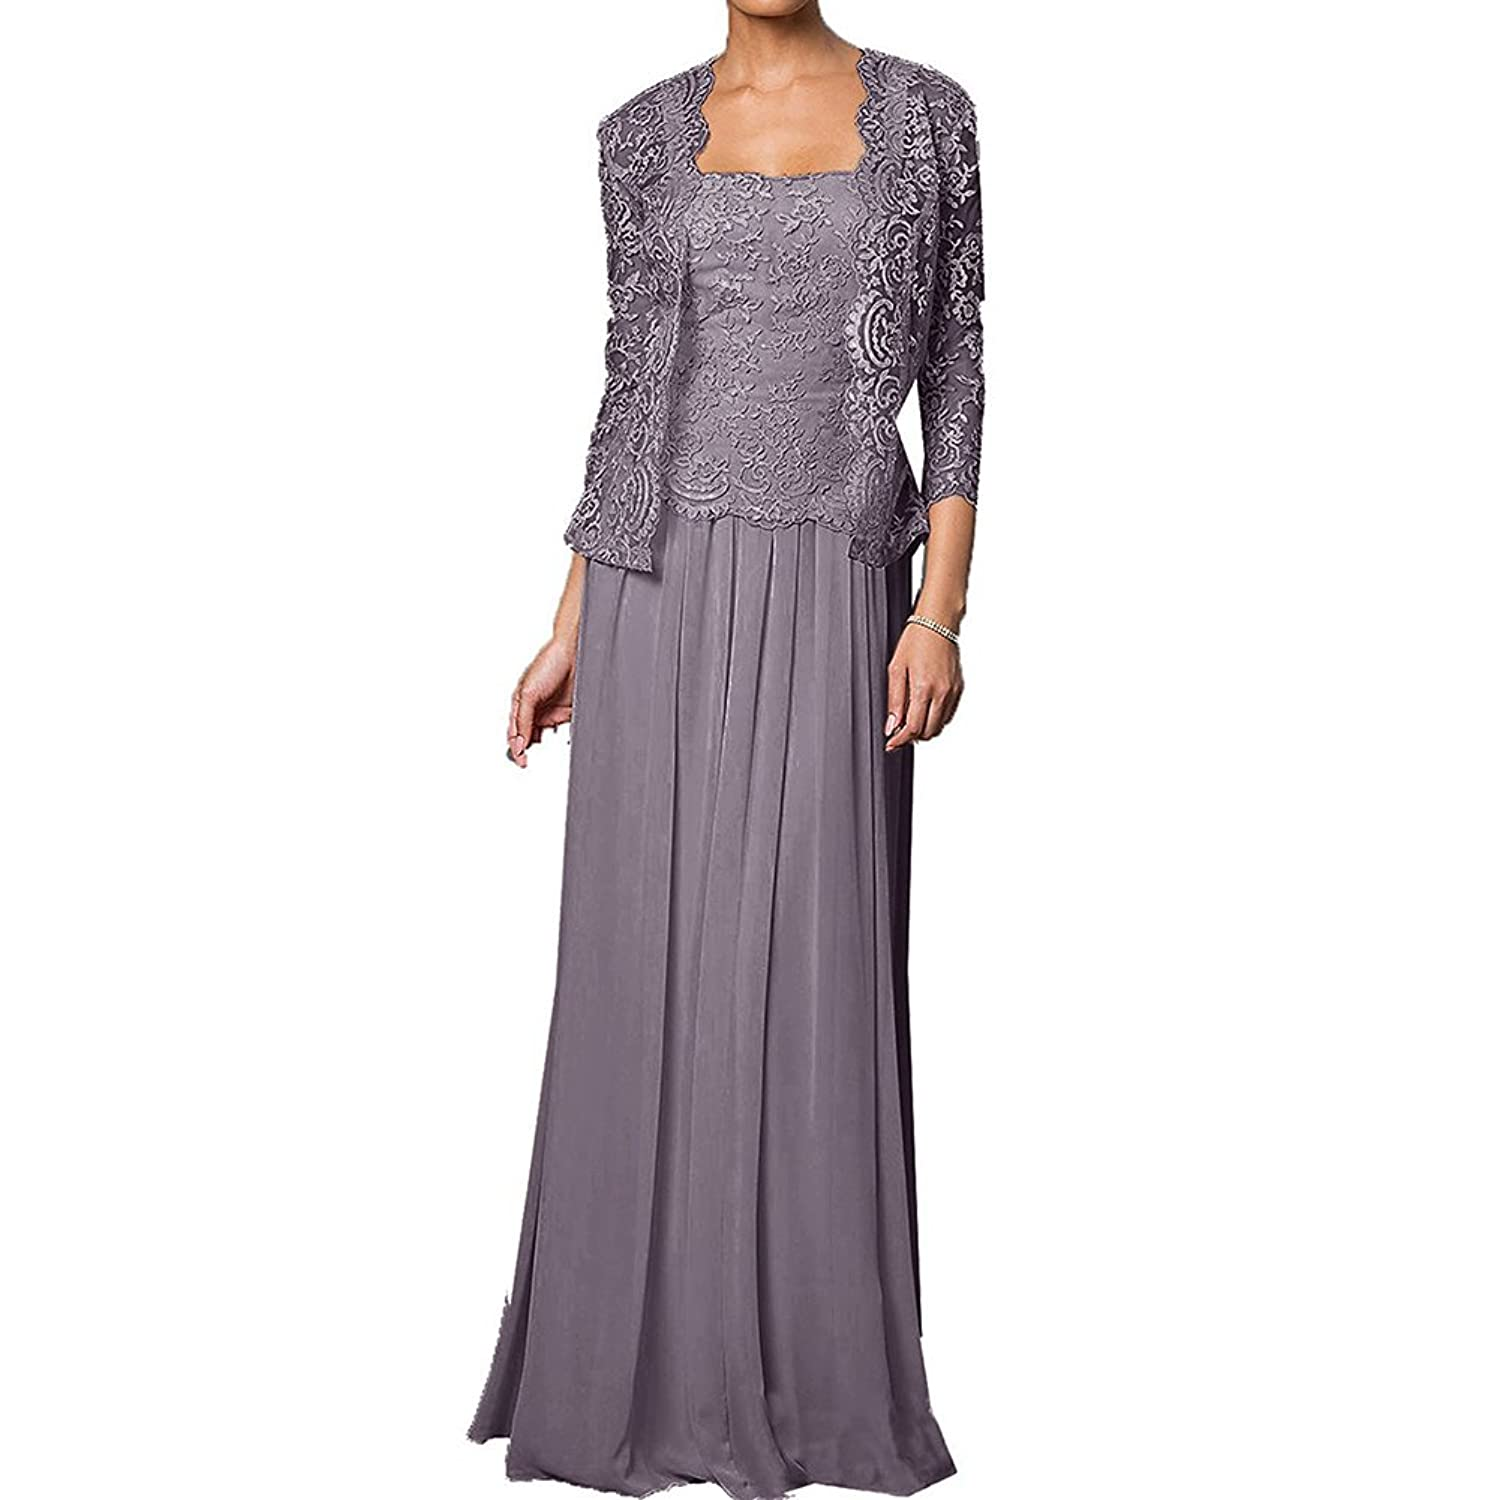 HWAN Mother of the Bride Dress Chiffon Long Formal Gowns with Lace Jacket